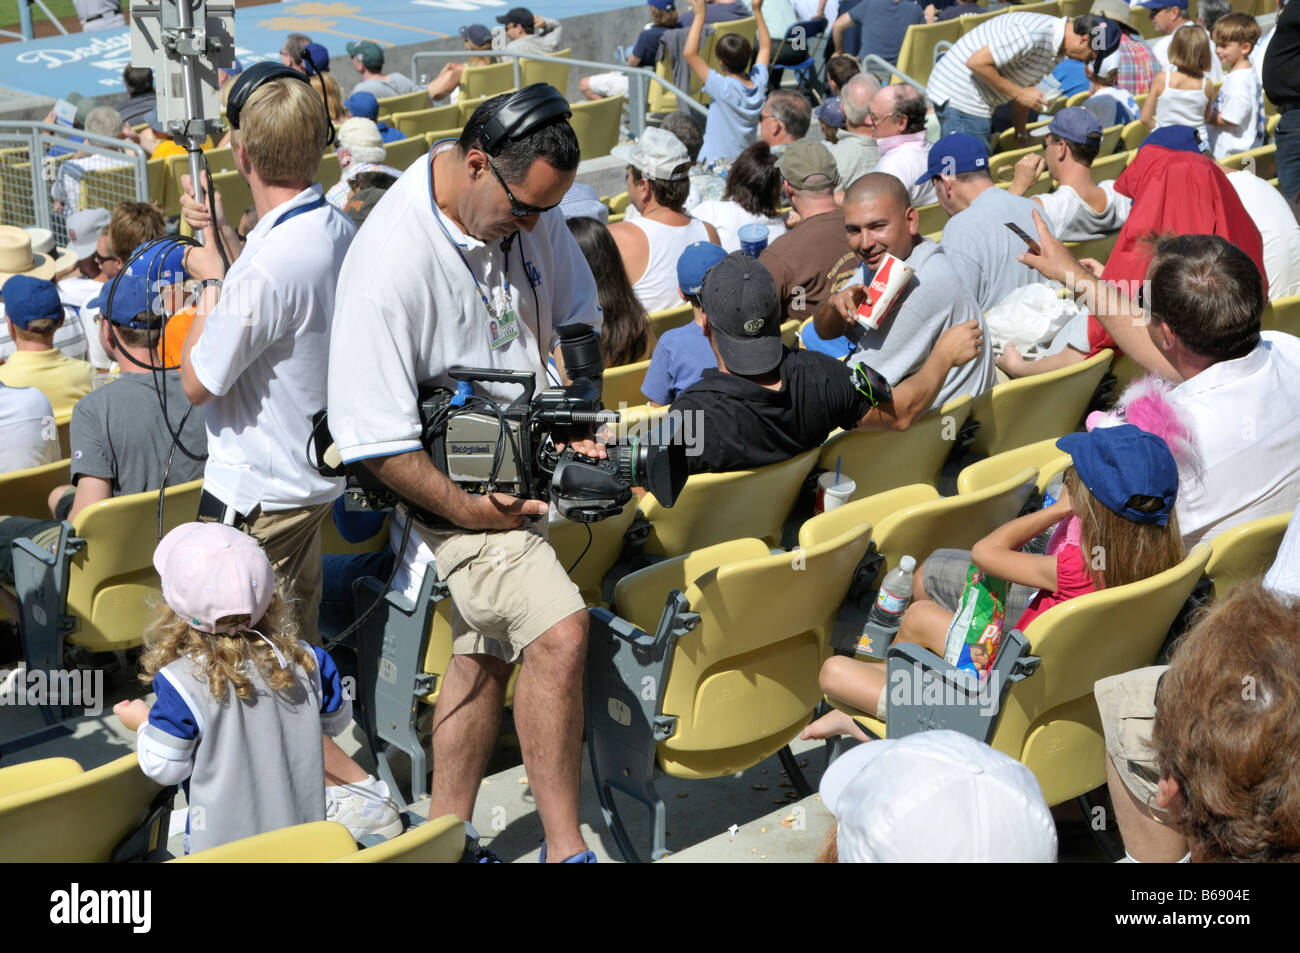 Video camera crew transmitting images of excited young baseball fans - Stock Image